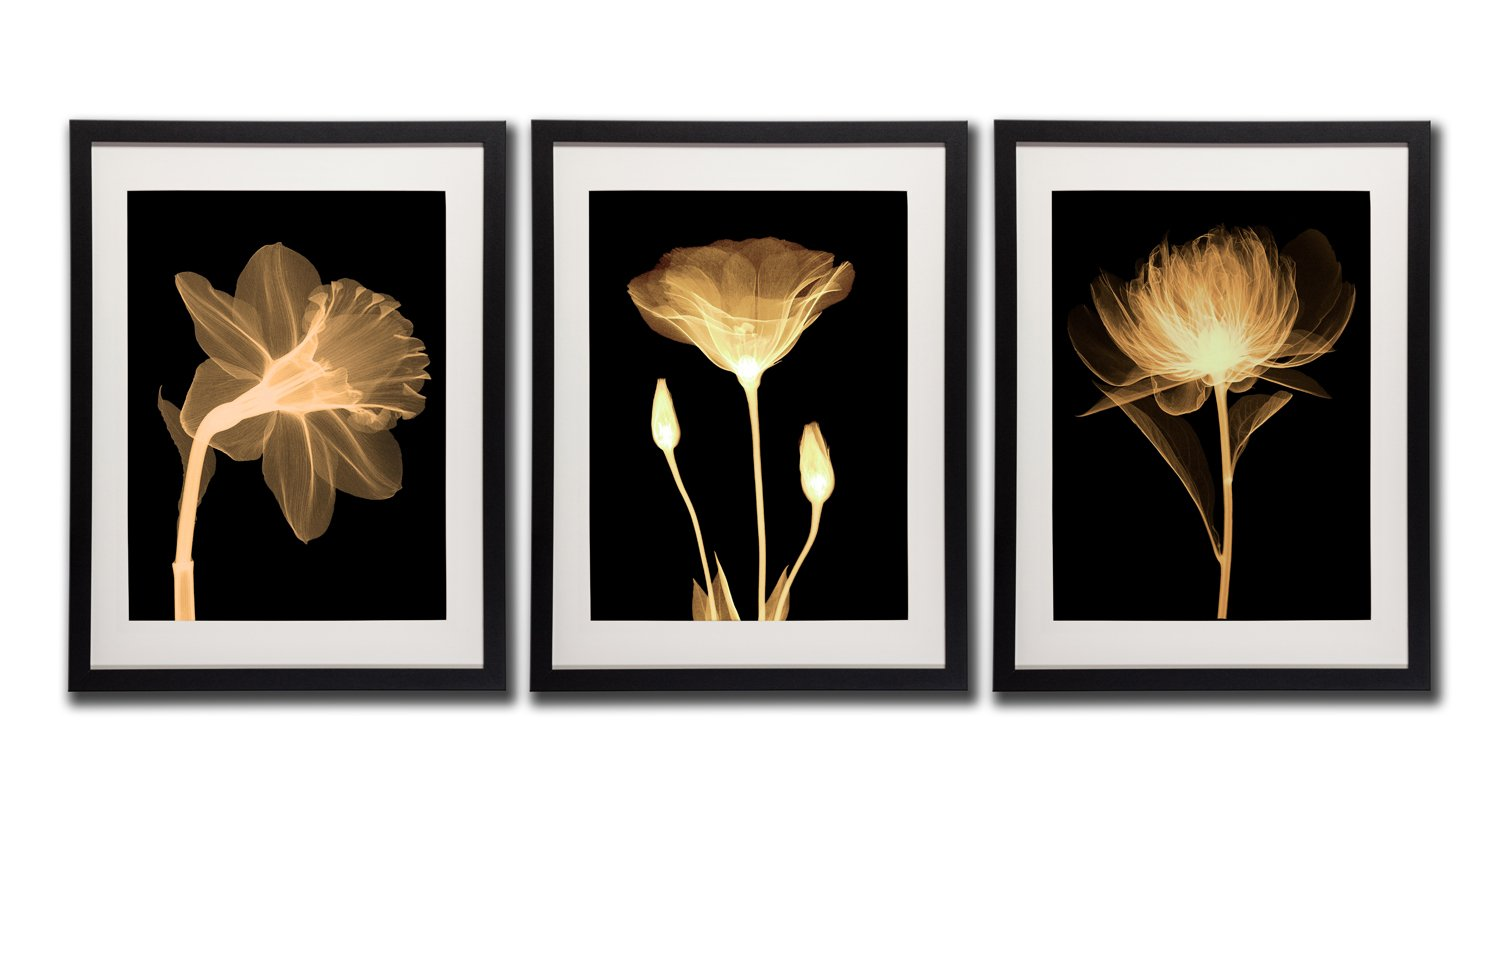 Black white and gold wall art canvas prints decor framed flowers painting poster printed on canvas poppy flower pictures 3 piece black frames white mat